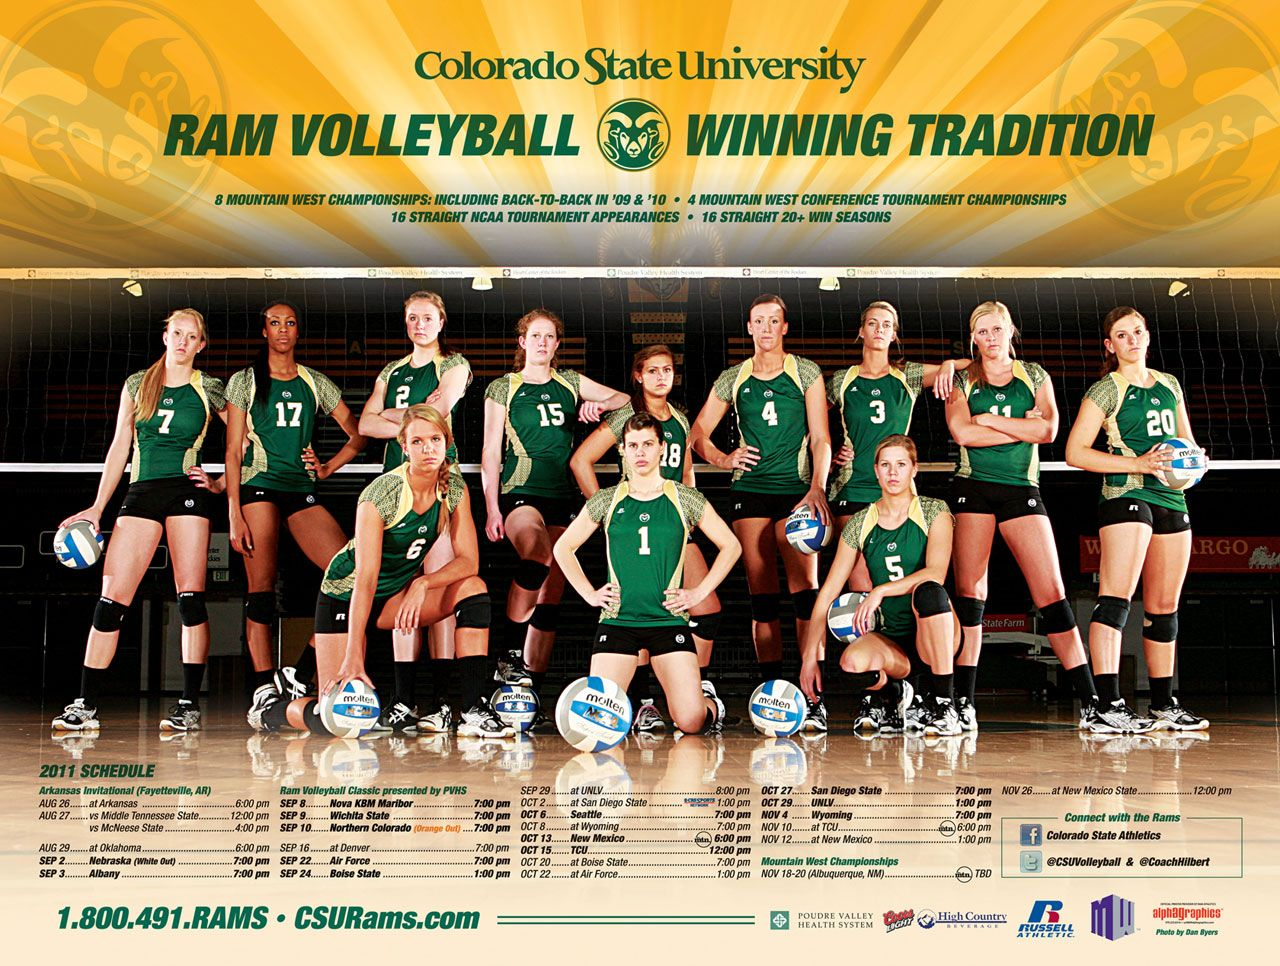 Http Grfx Cstv Com Schools Csu Graphics Wallpaper 11 Csu Volleyball Poster2 1280 Jpg Team Photography Volleyball Posters Sports Photos